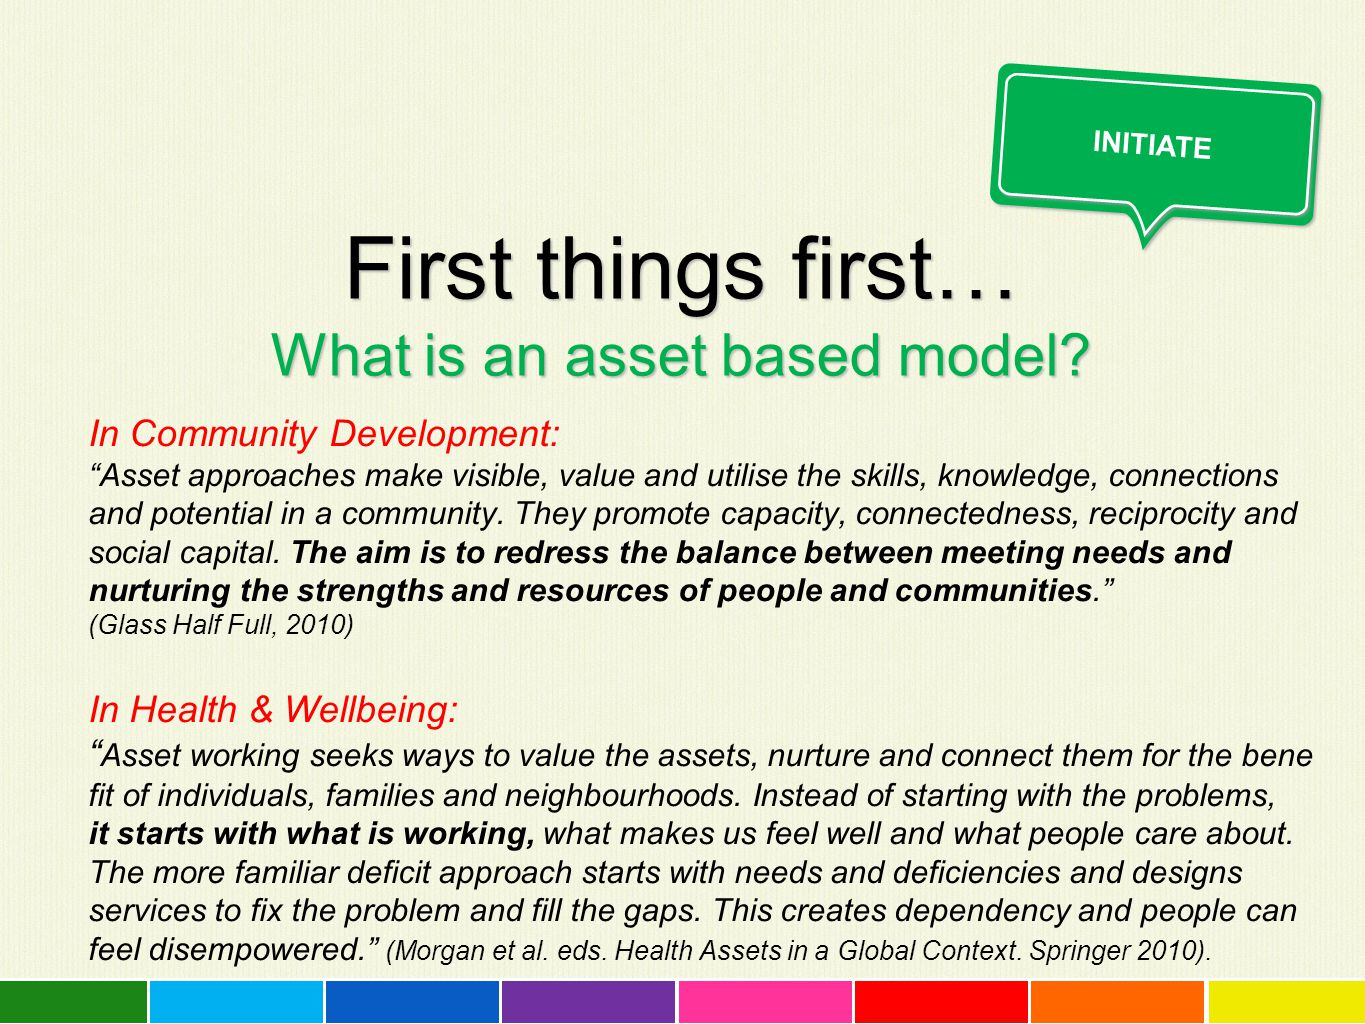 First things first… What is an asset based model